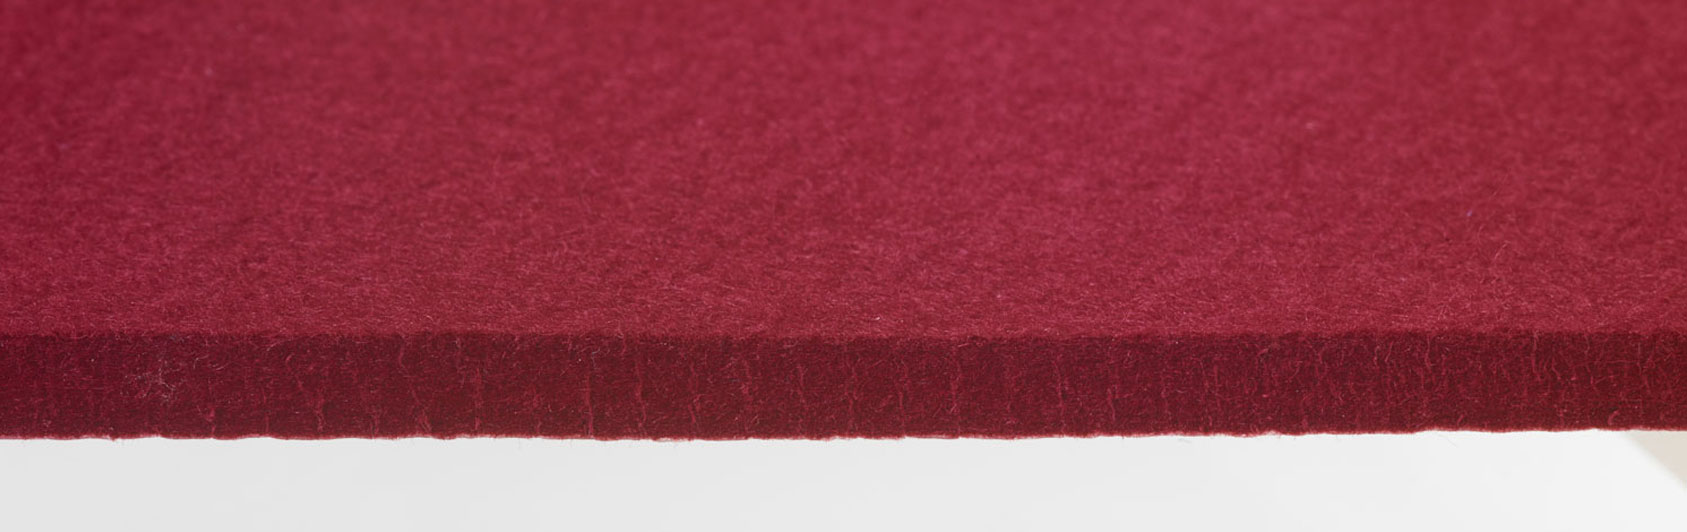 pew runner felt color red